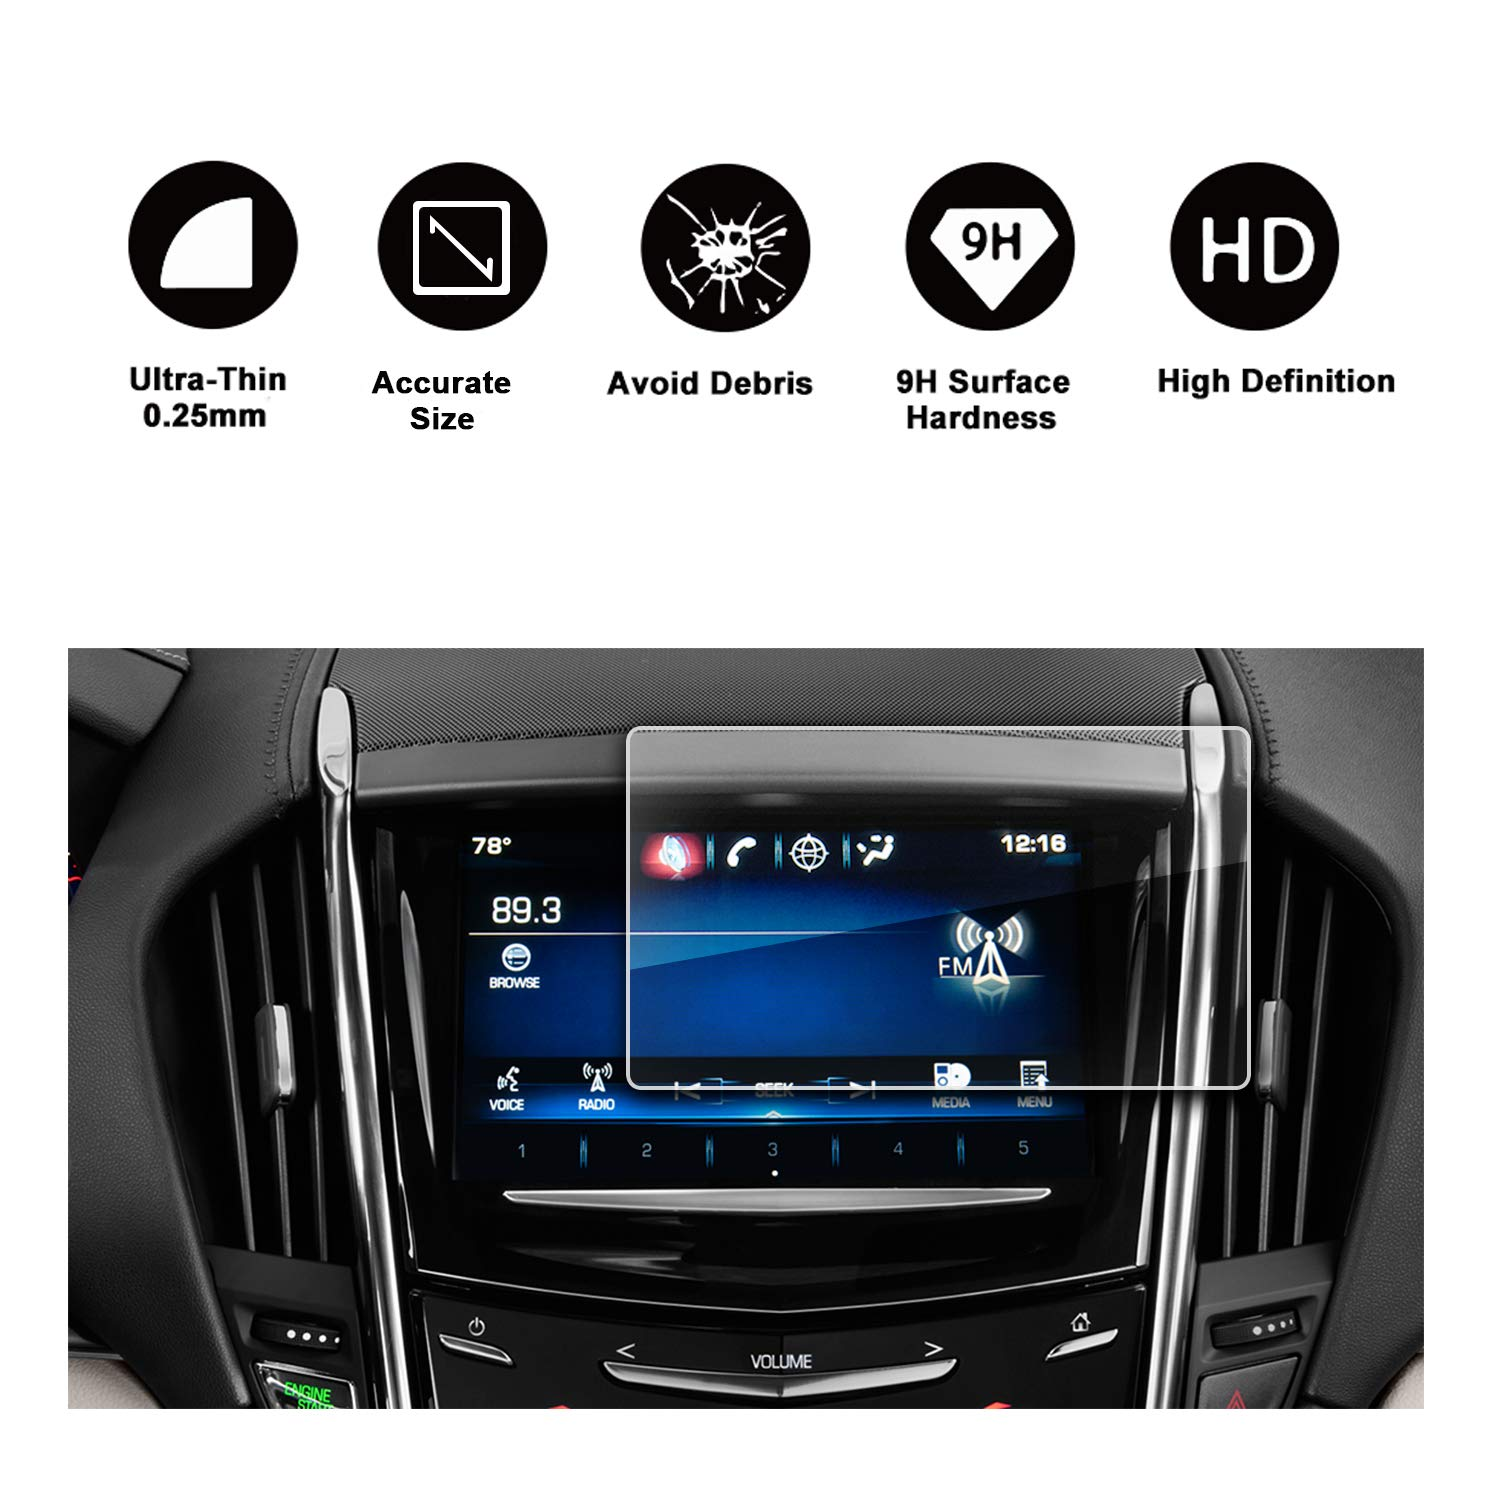 2013-2018 Cadillac ATS Cadillac SRX 8In CUE infotainment Interface Touchscreen Car Navigation Touch Screen Protector,Tempered Glass 9H Anti-Scratch and Shock Resistant